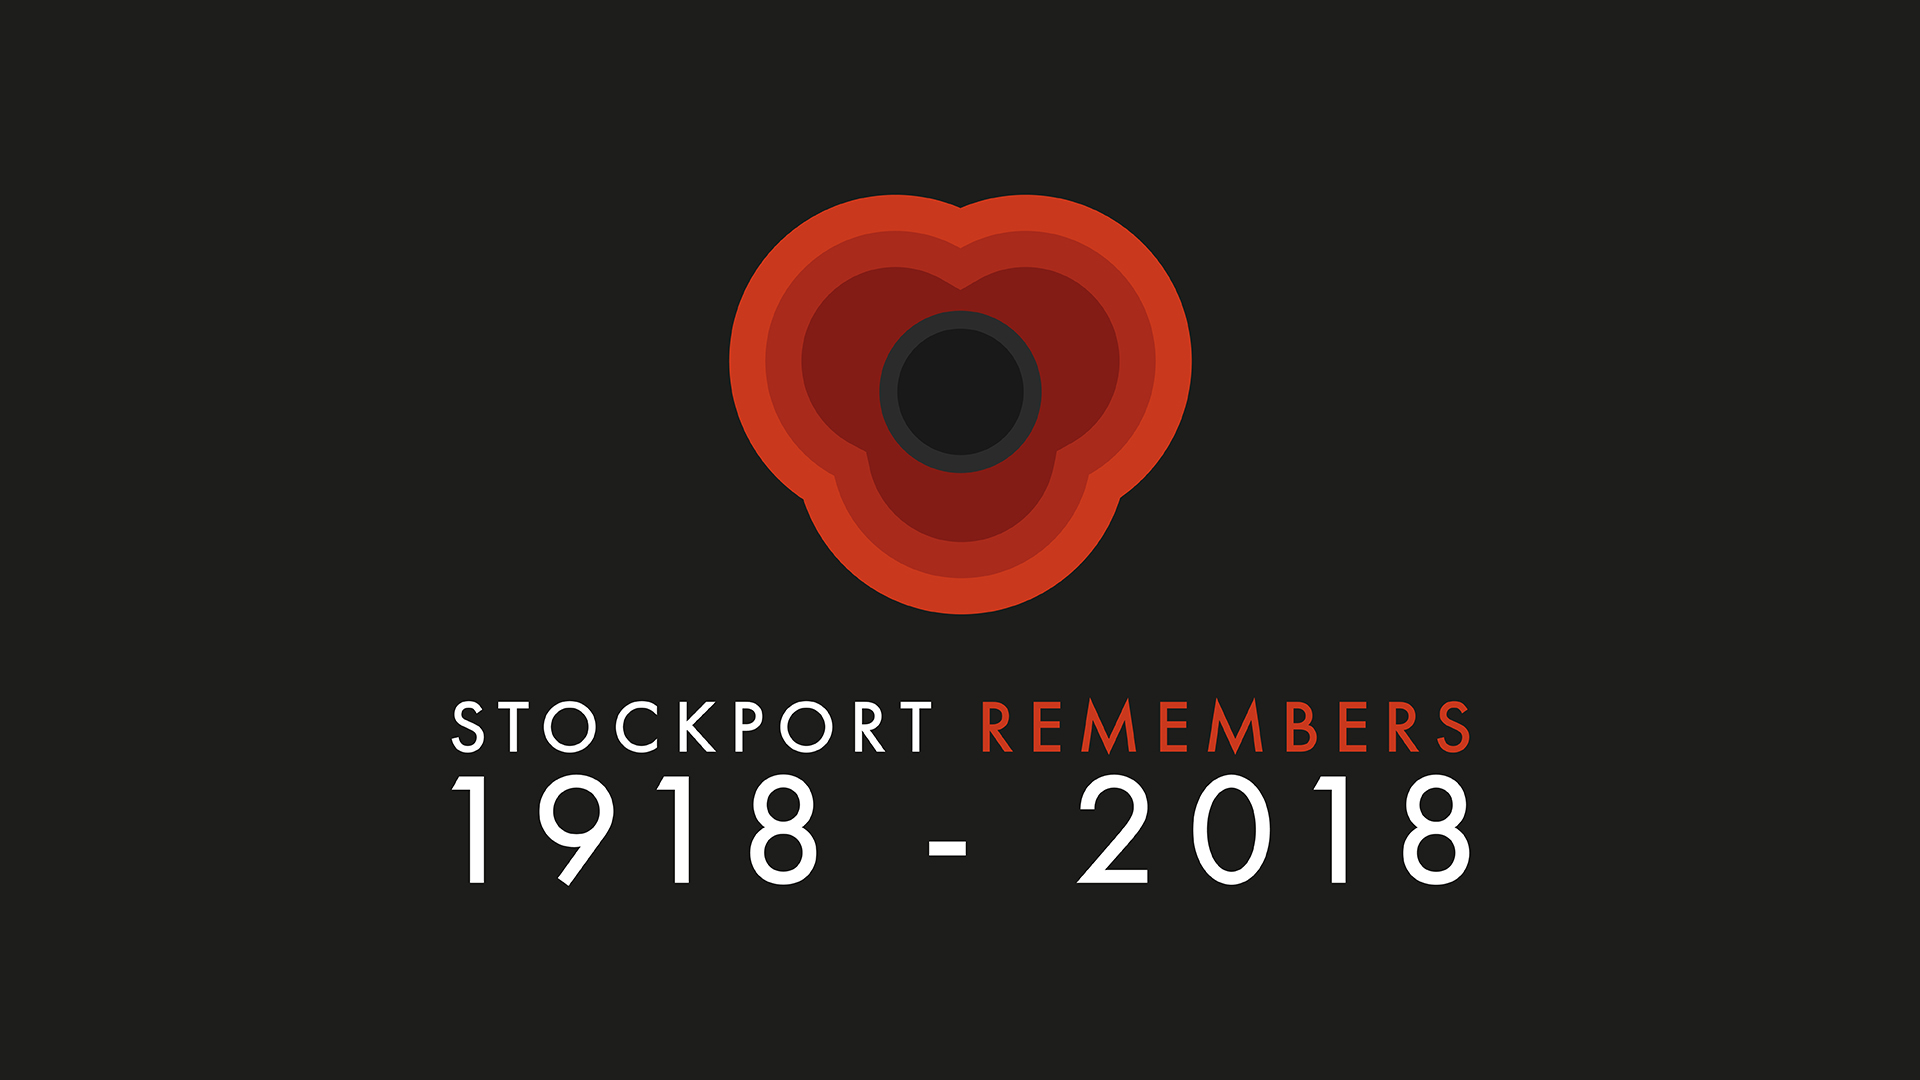 'Stockport Remembers' 100 years since the end of WW1